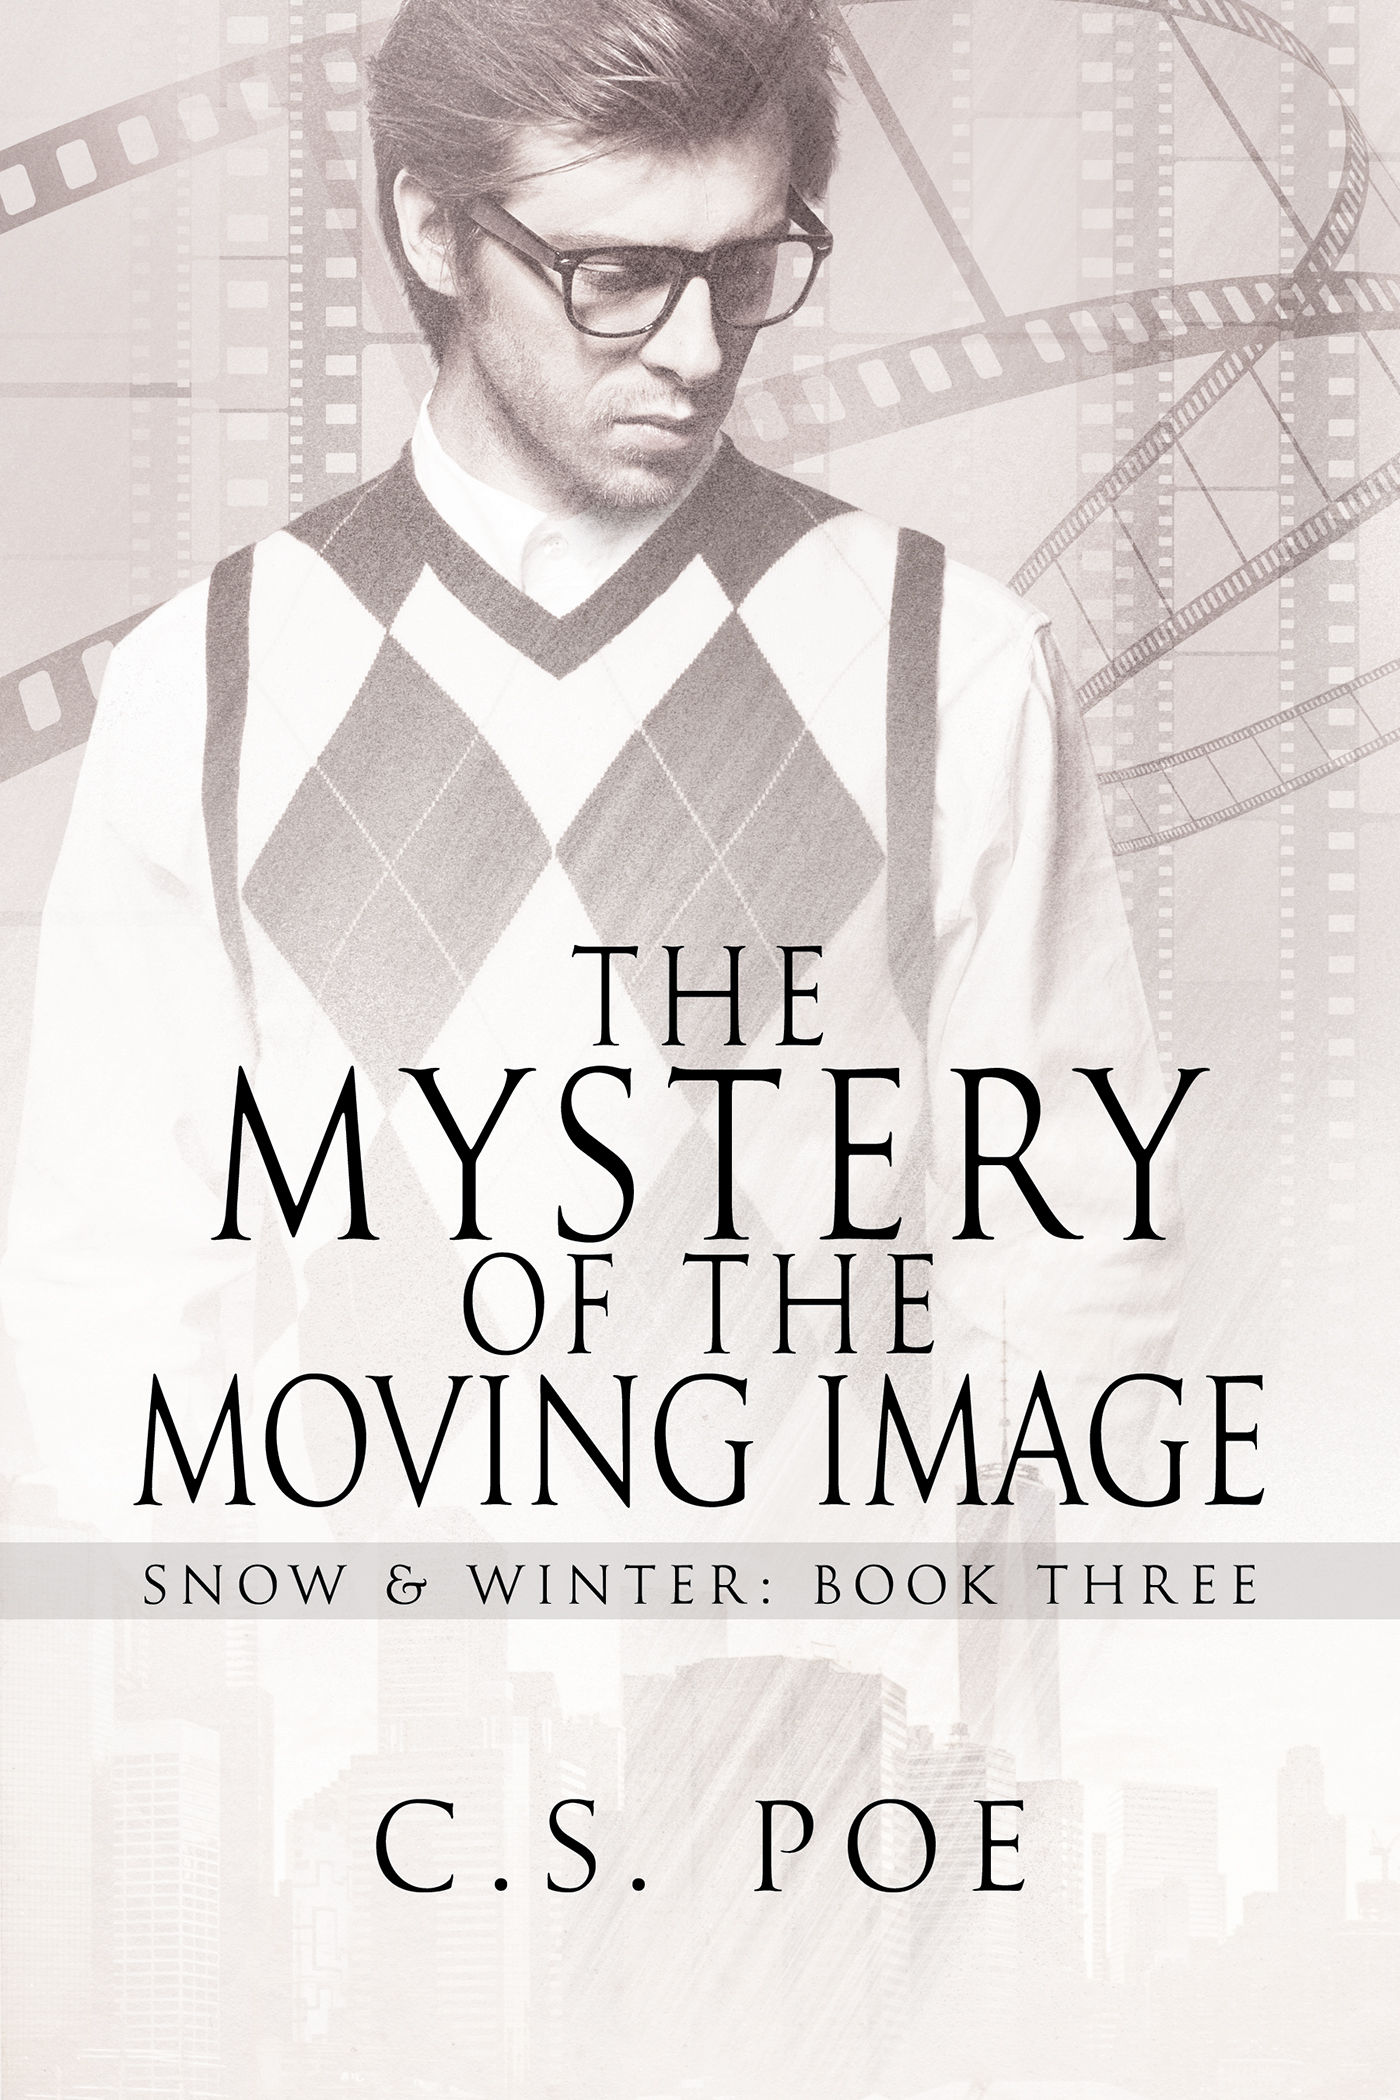 Review: The Mystery of the Moving Image by C.S. Poe